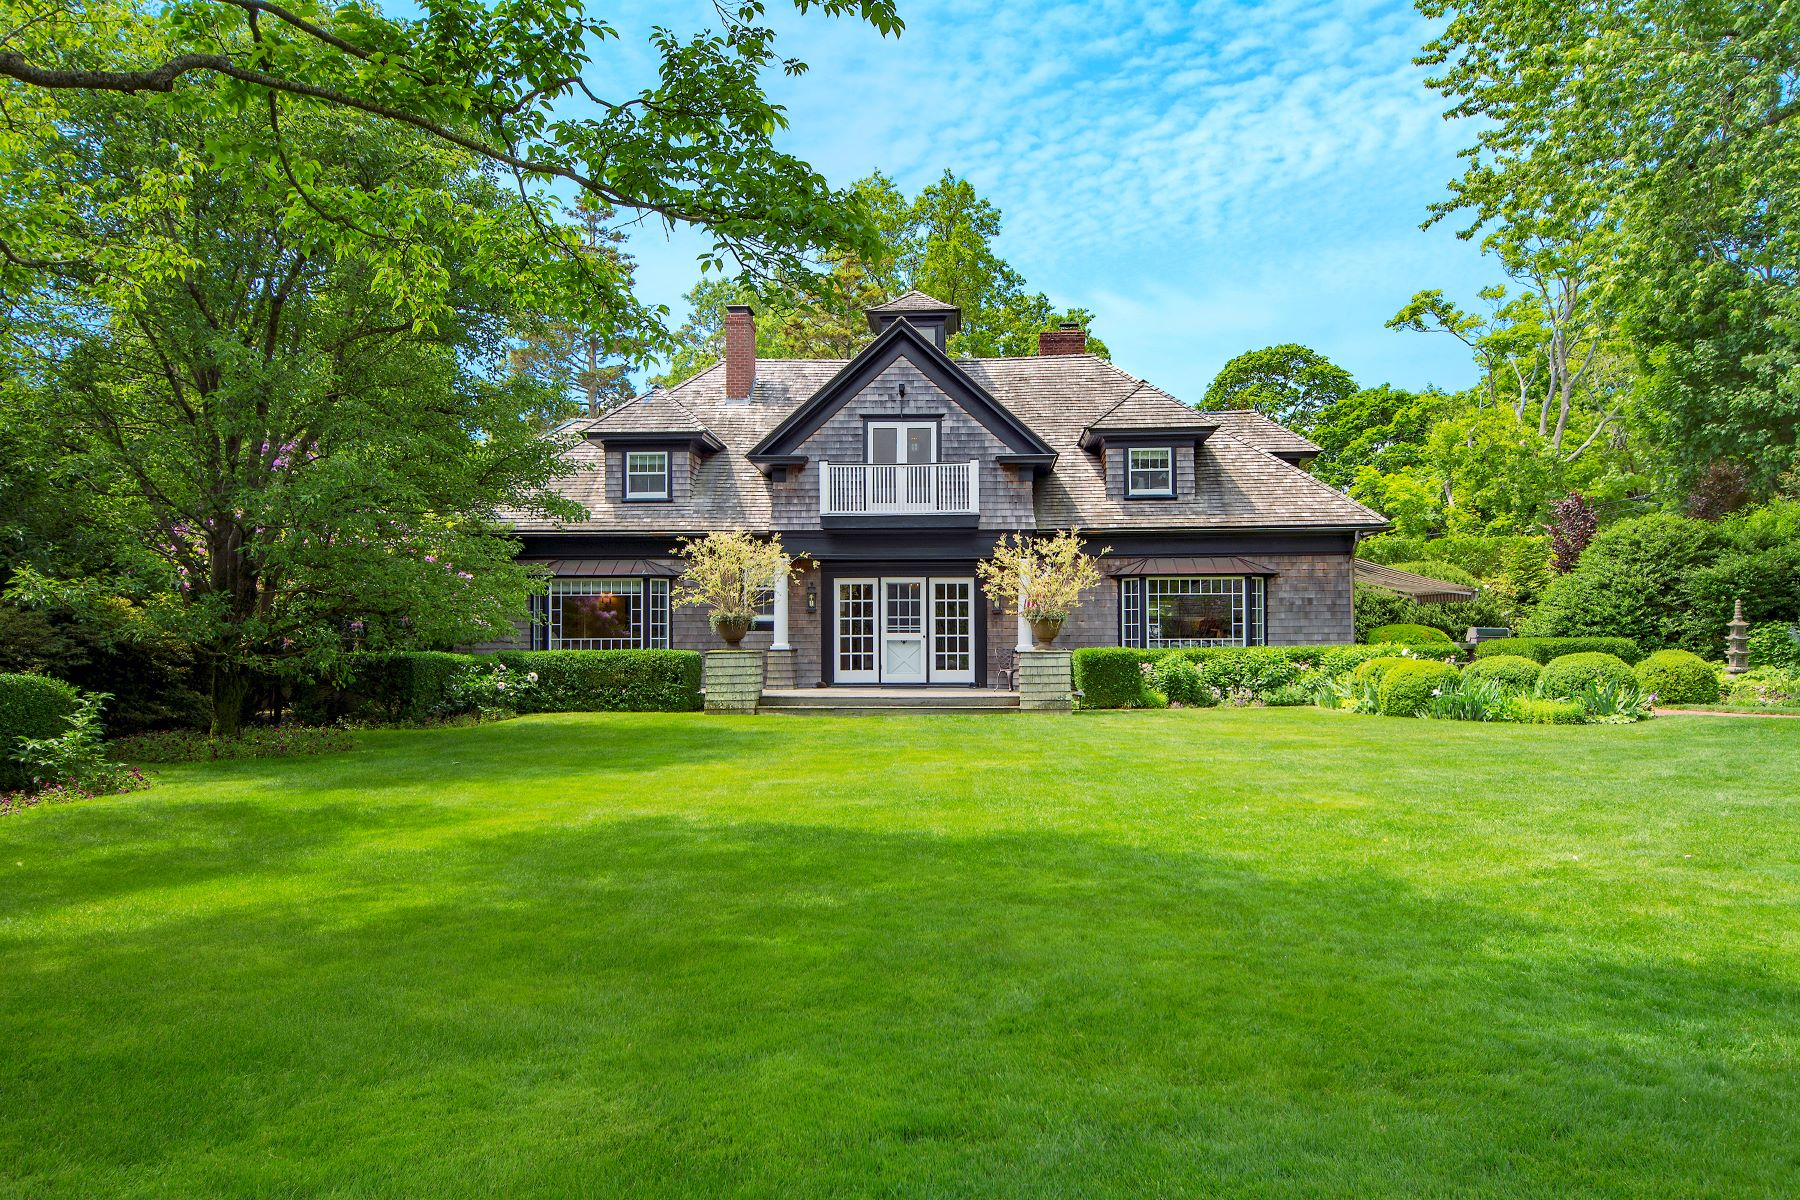 Single Family Homes for Sale at RENOVATED 1896 ENGLISH CARRIAGE HOUSE 9 Little Cobb Road Water Mill, New York 11976 United States